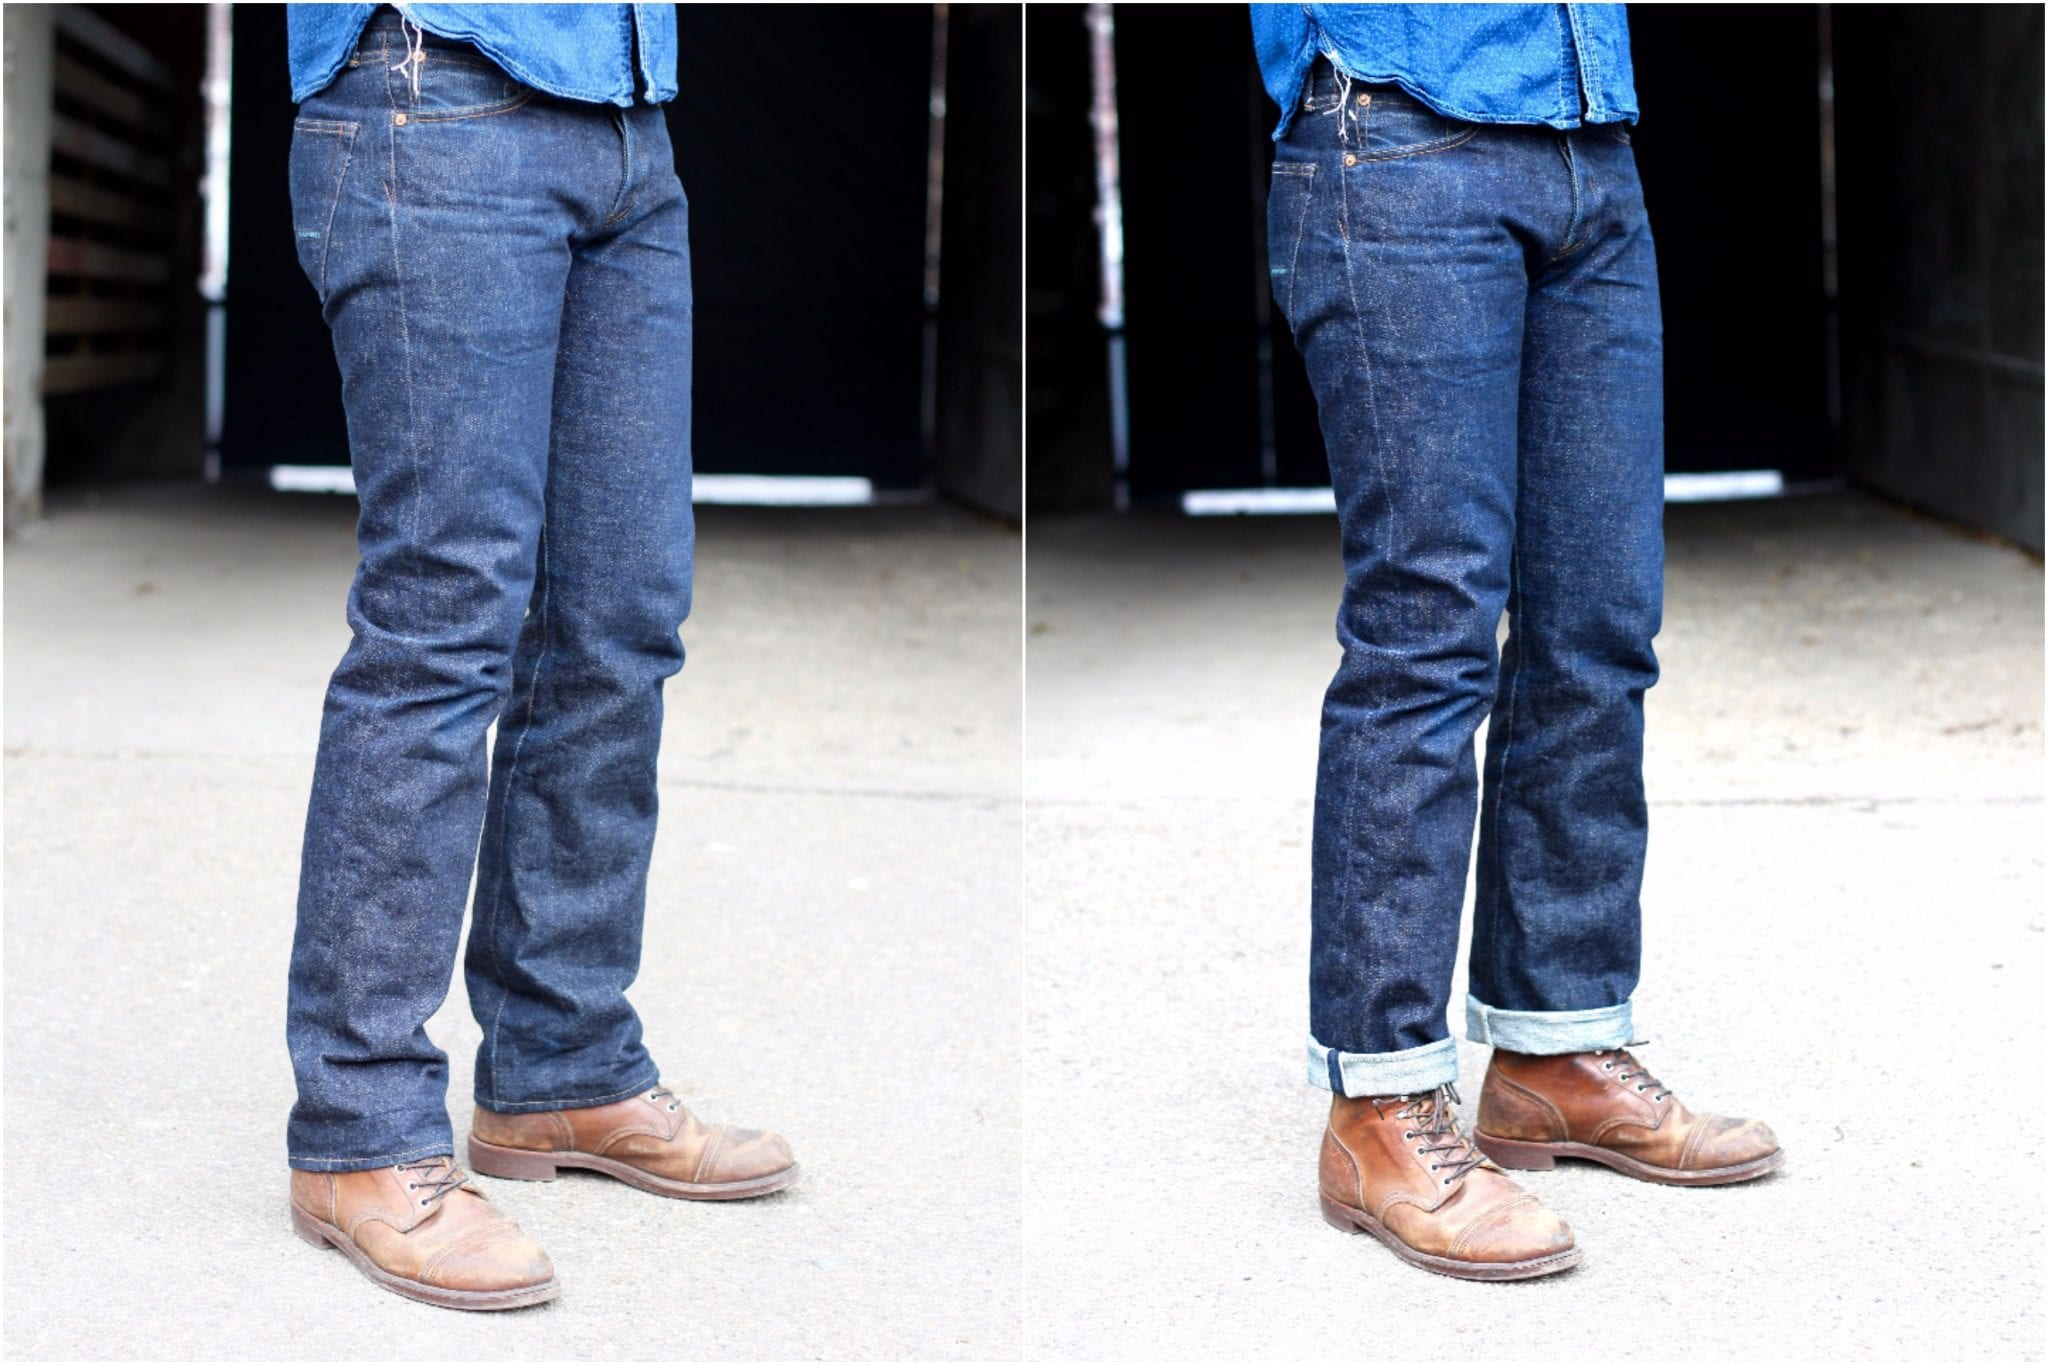 Regular fit Indigofera Clint jeans, side comparison with and without cuff